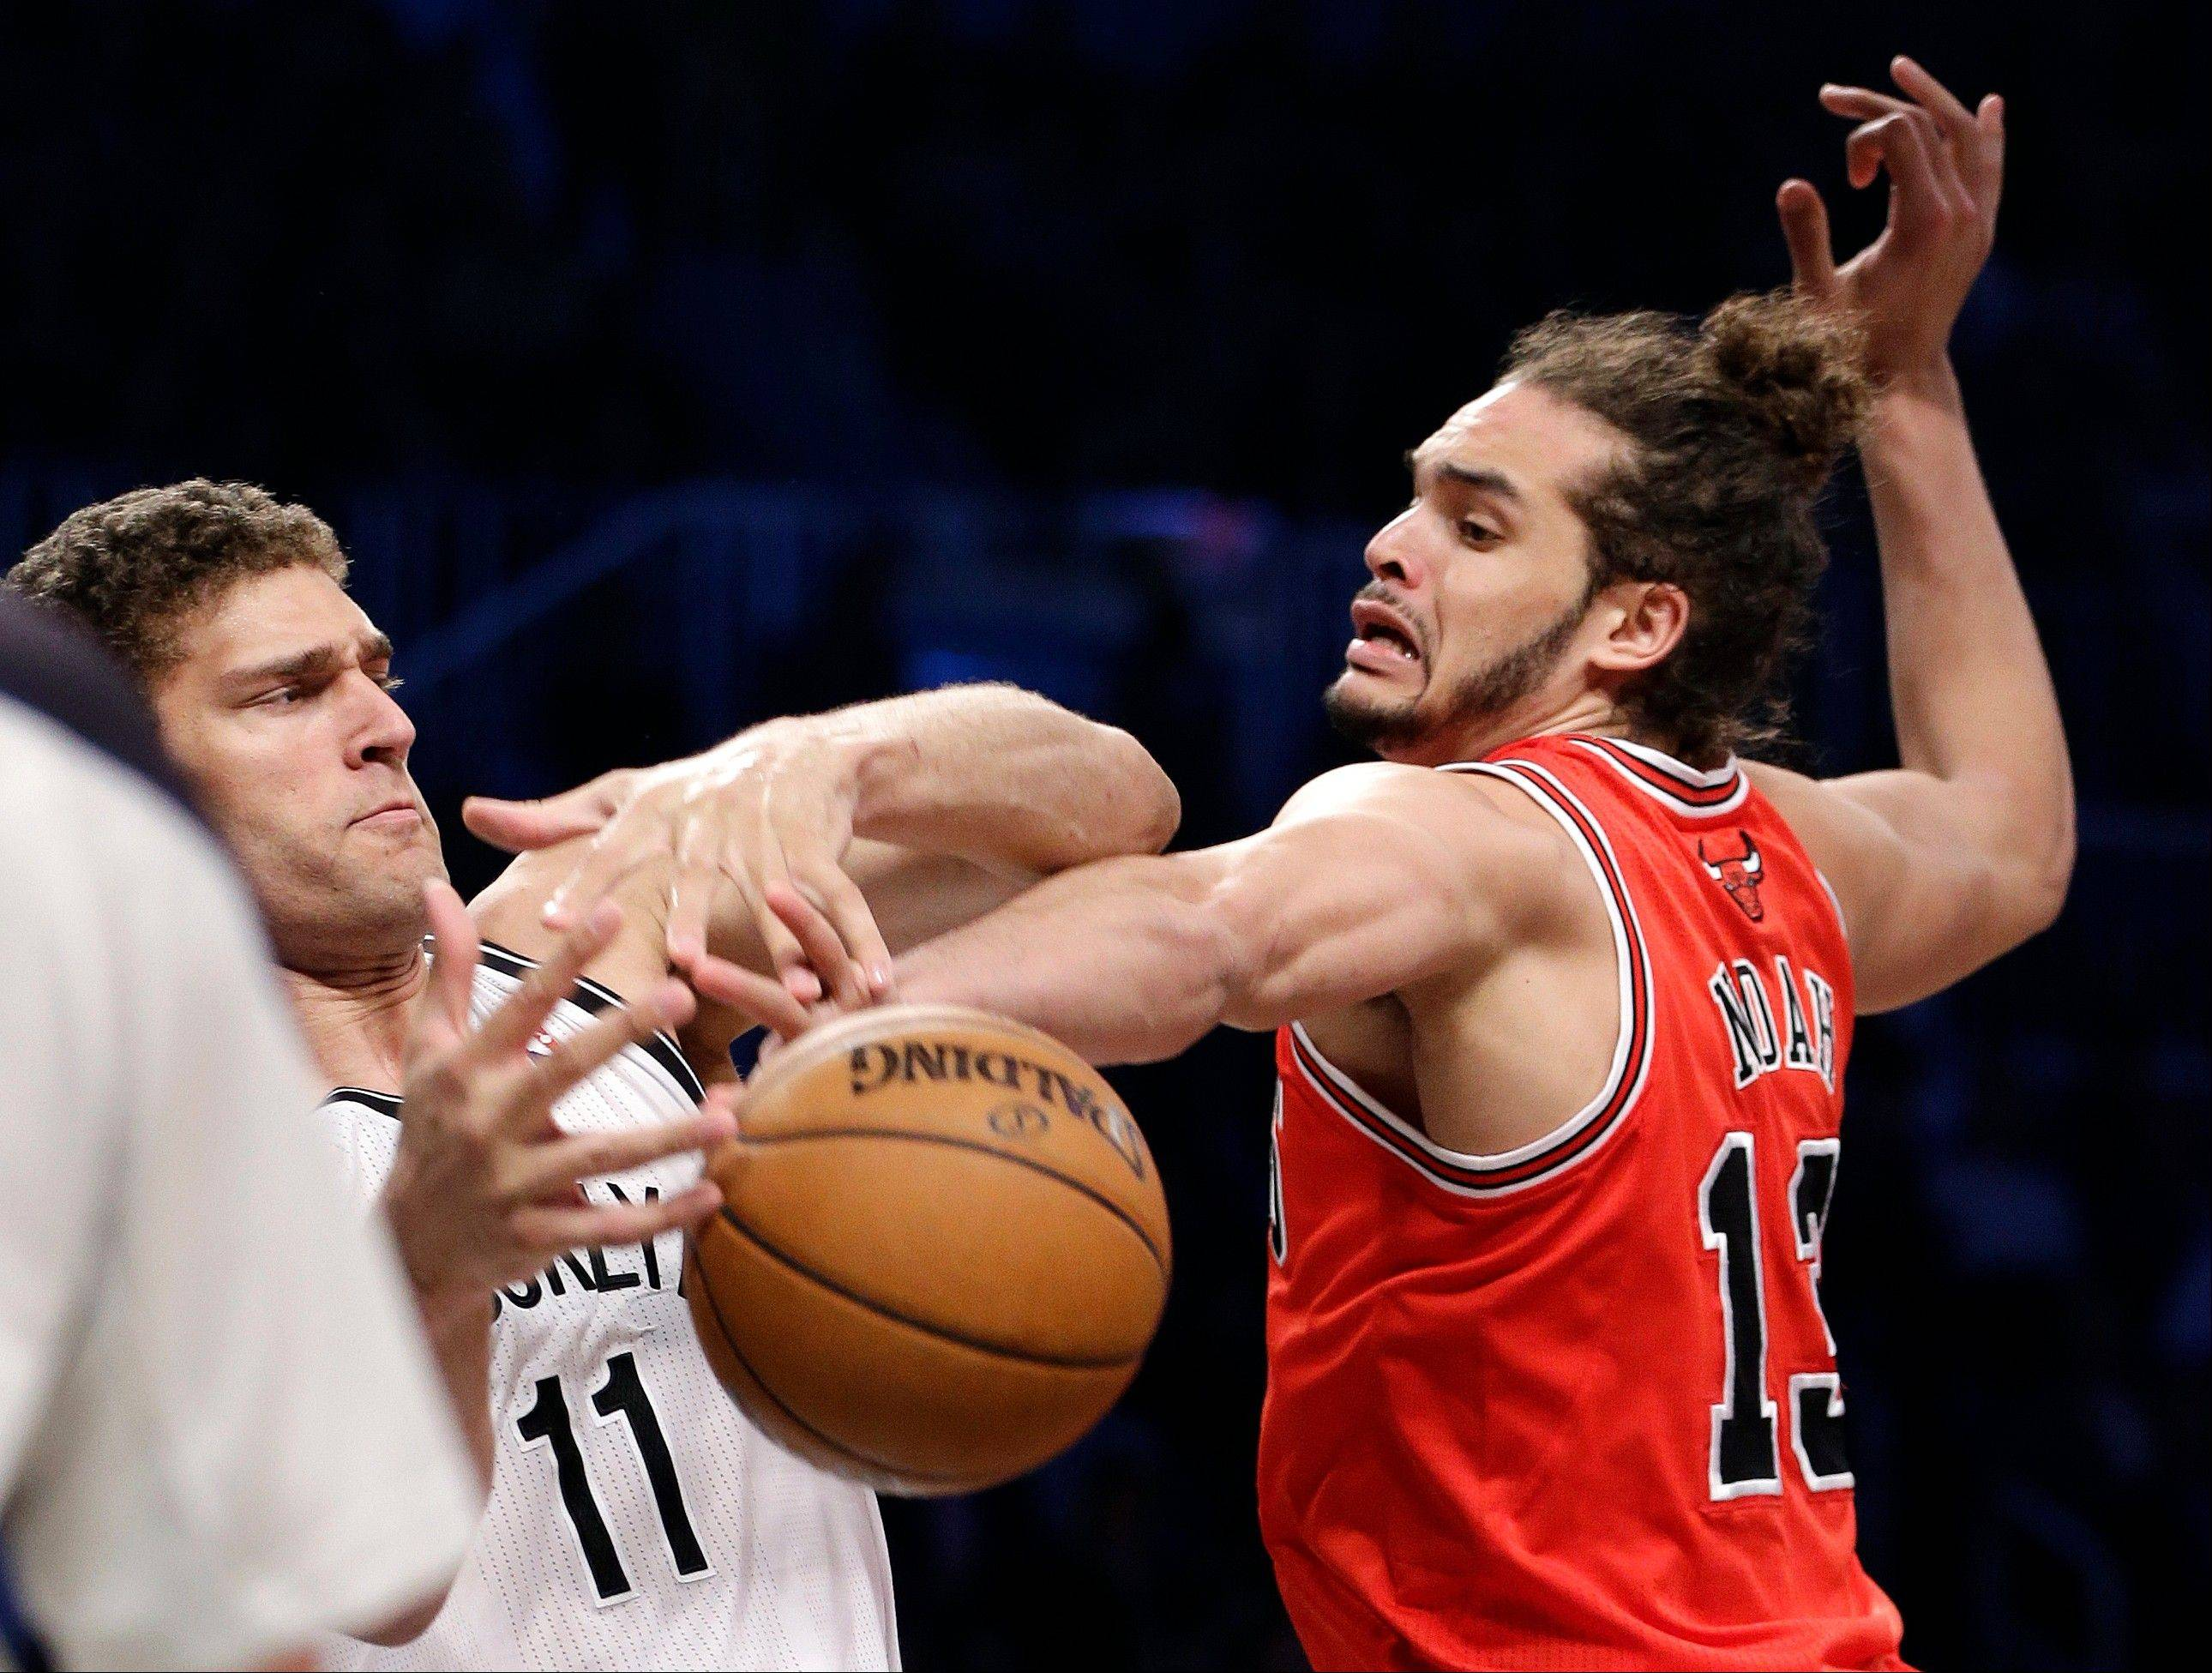 Chicago Bulls center Joakim Noah (13) steals the ball from Brooklyn Nets center Brook Lopez (11) in the first half of Game 5 of their first-round NBA basketball playoff series, Monday, April 29, 2013, in New York.